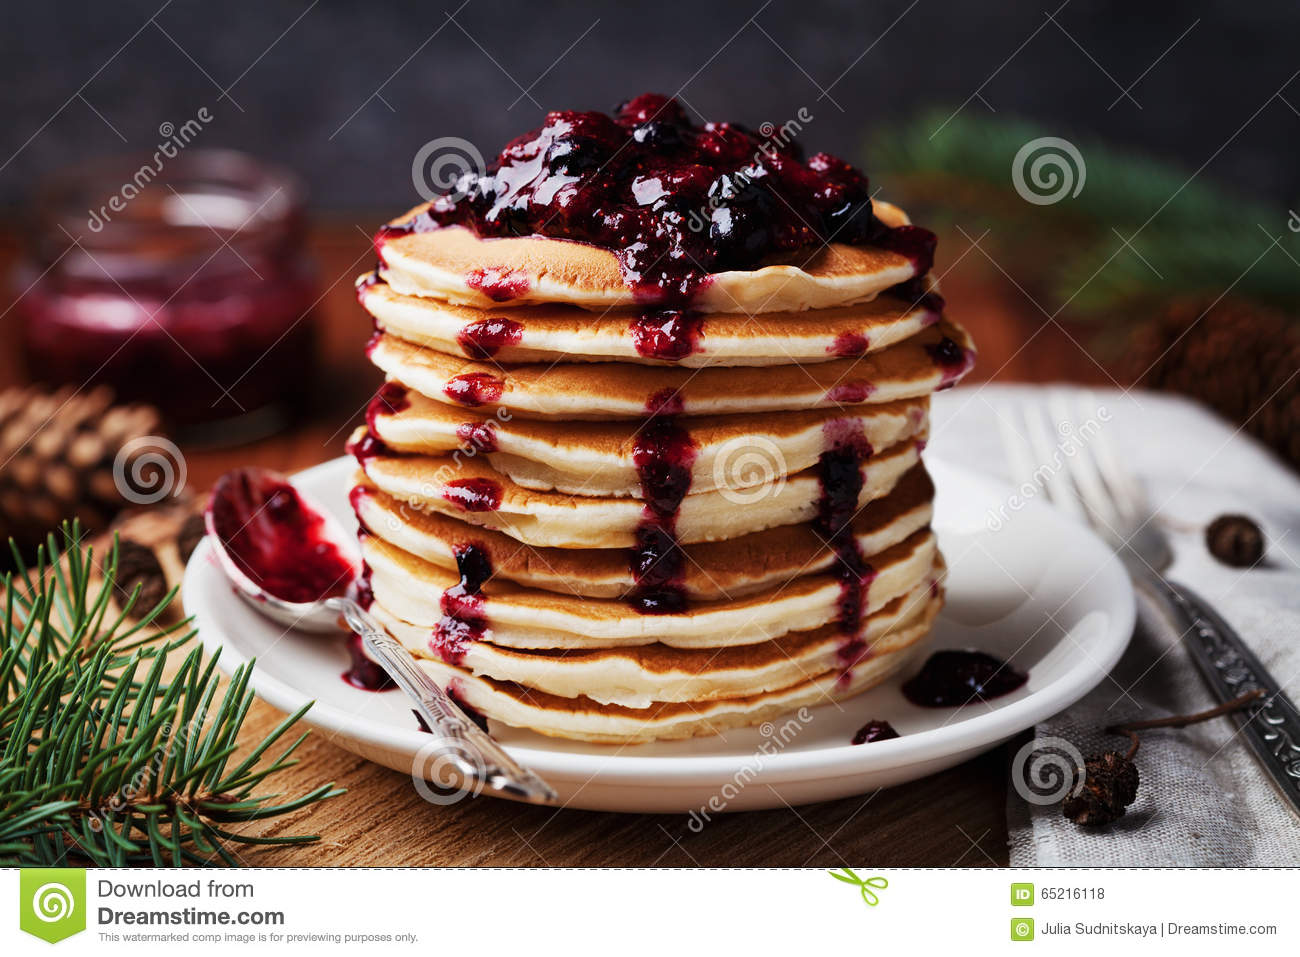 American pancakes or fritters served with strawberry and blueberry jam, delicious dessert for breakfast in winter